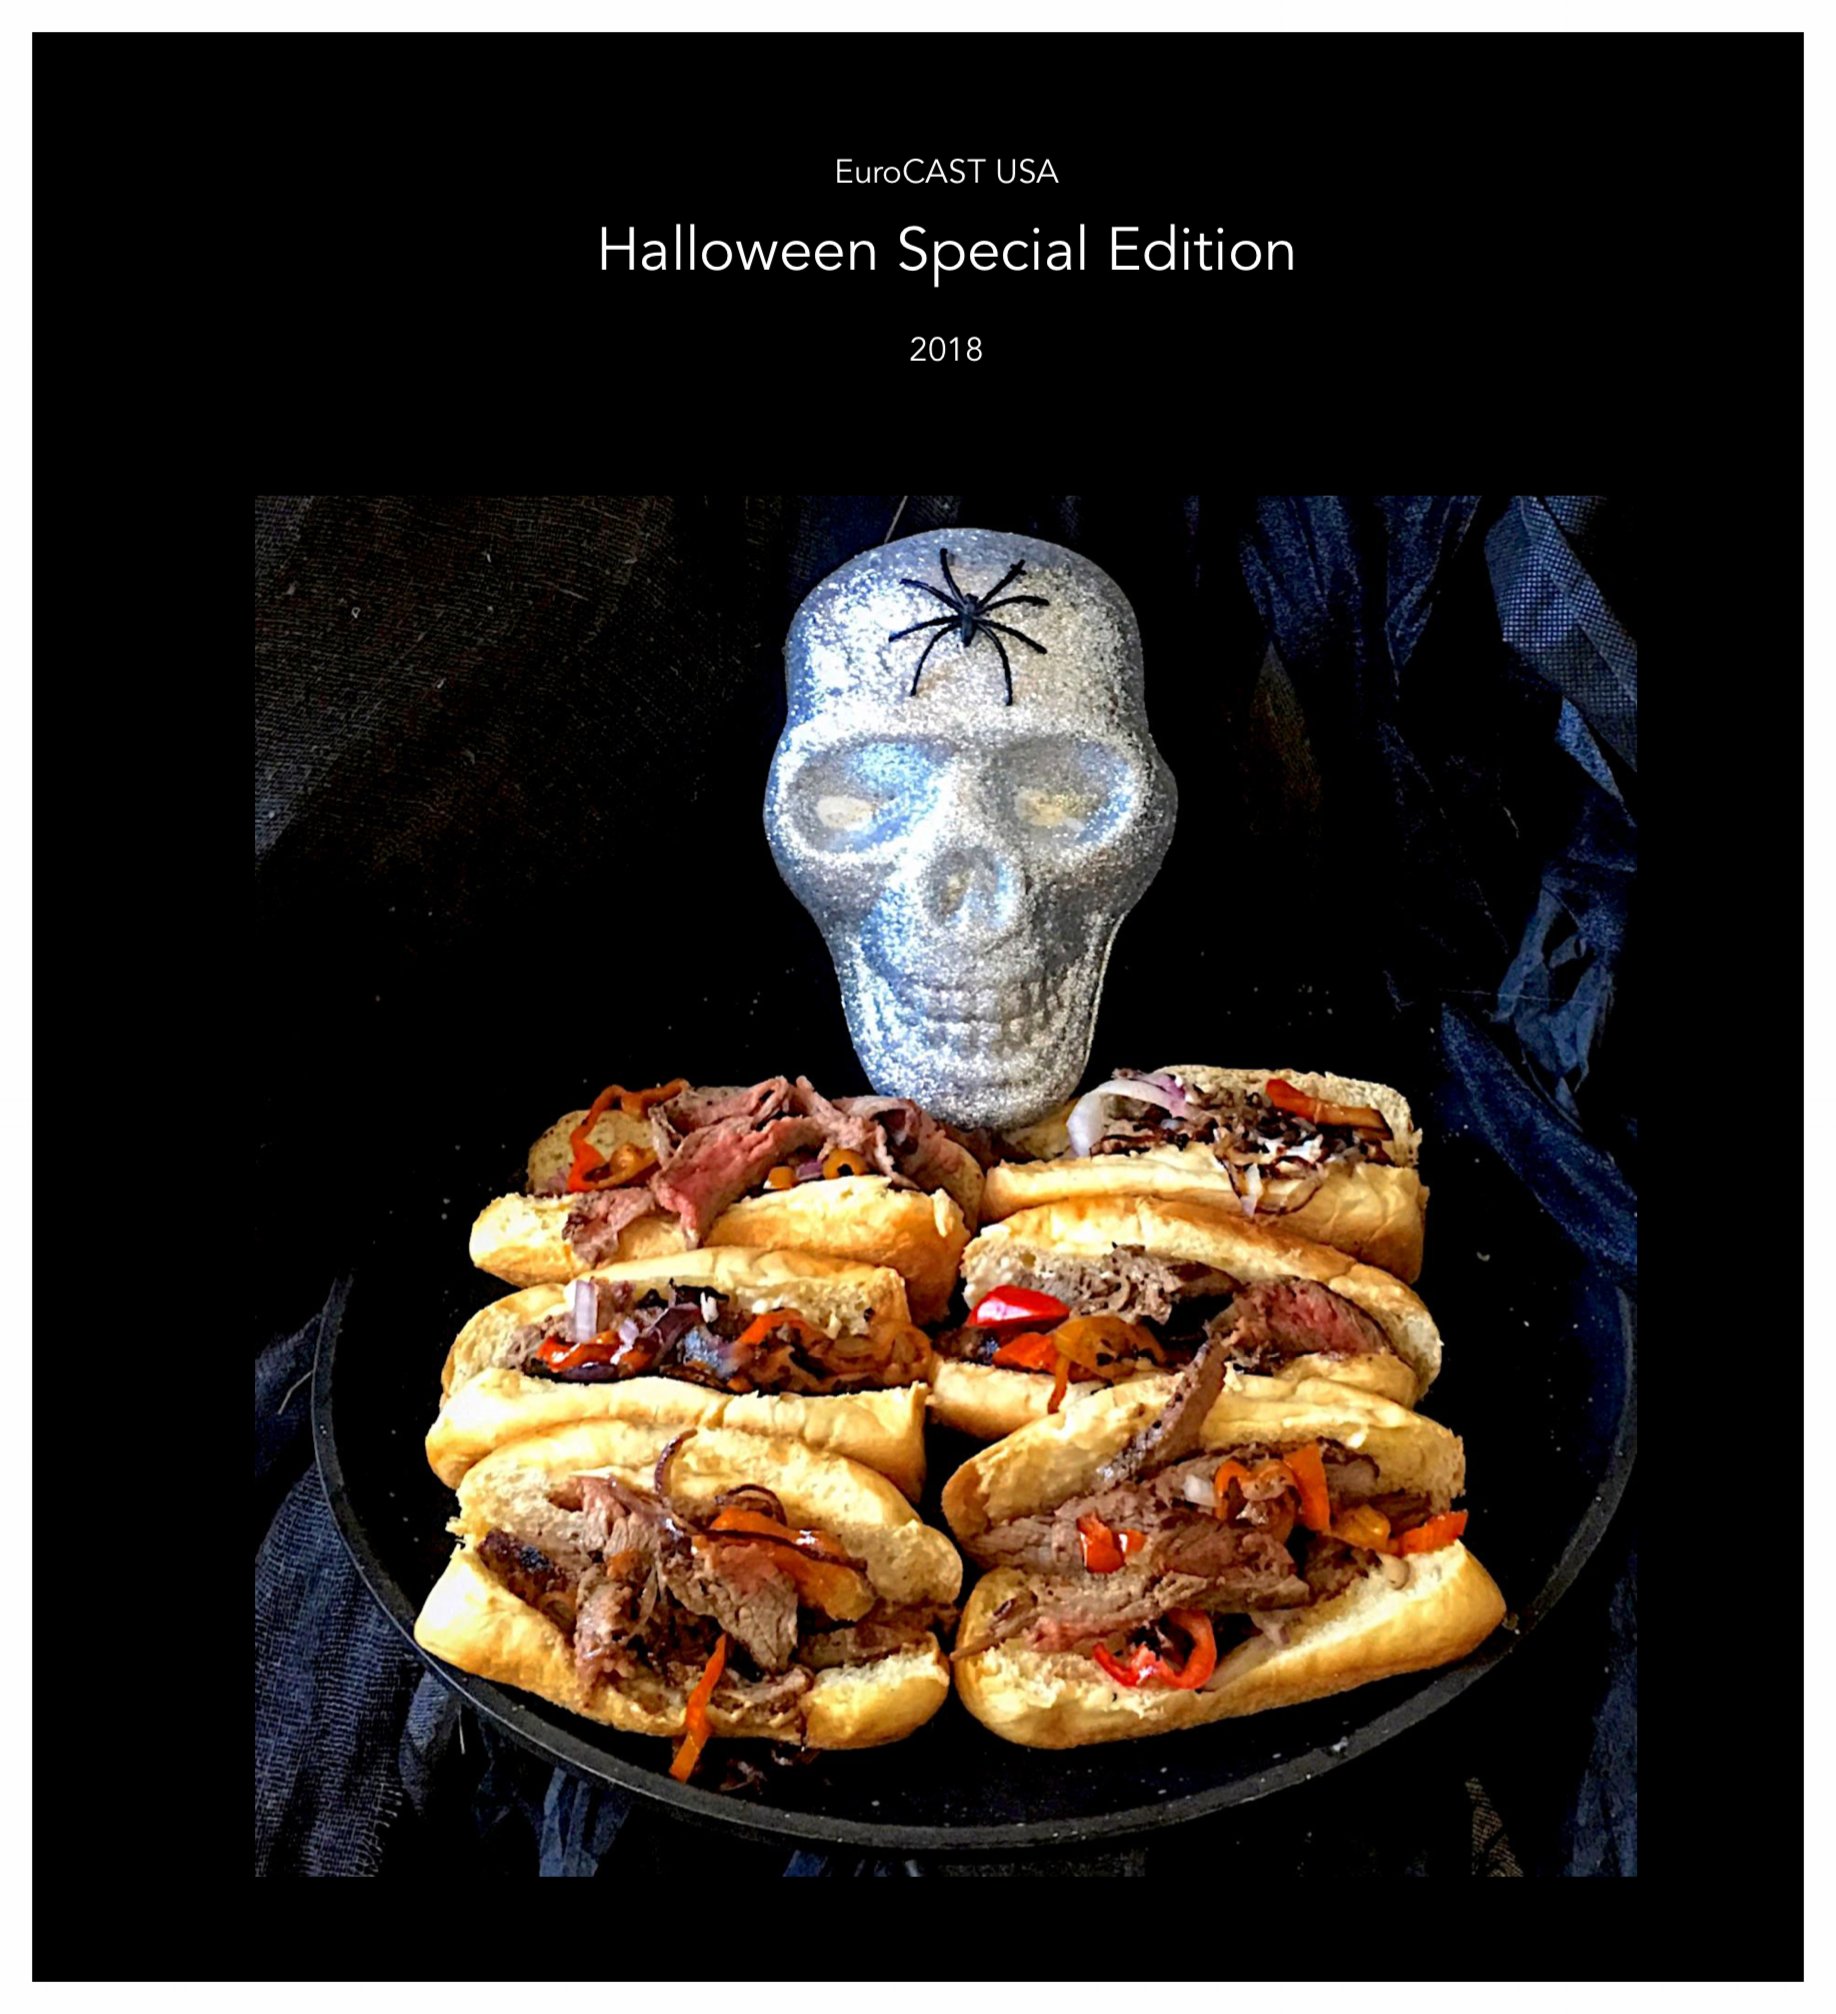 Click on the button below for our Halloween Special Cookbook! Free! Free! Free! All the thrills and chills! Plus, $300 in savings on the EuroCAST Chef Set! Plus, we'll give you for free as a holiday bonus the Stir-Fry Wok.